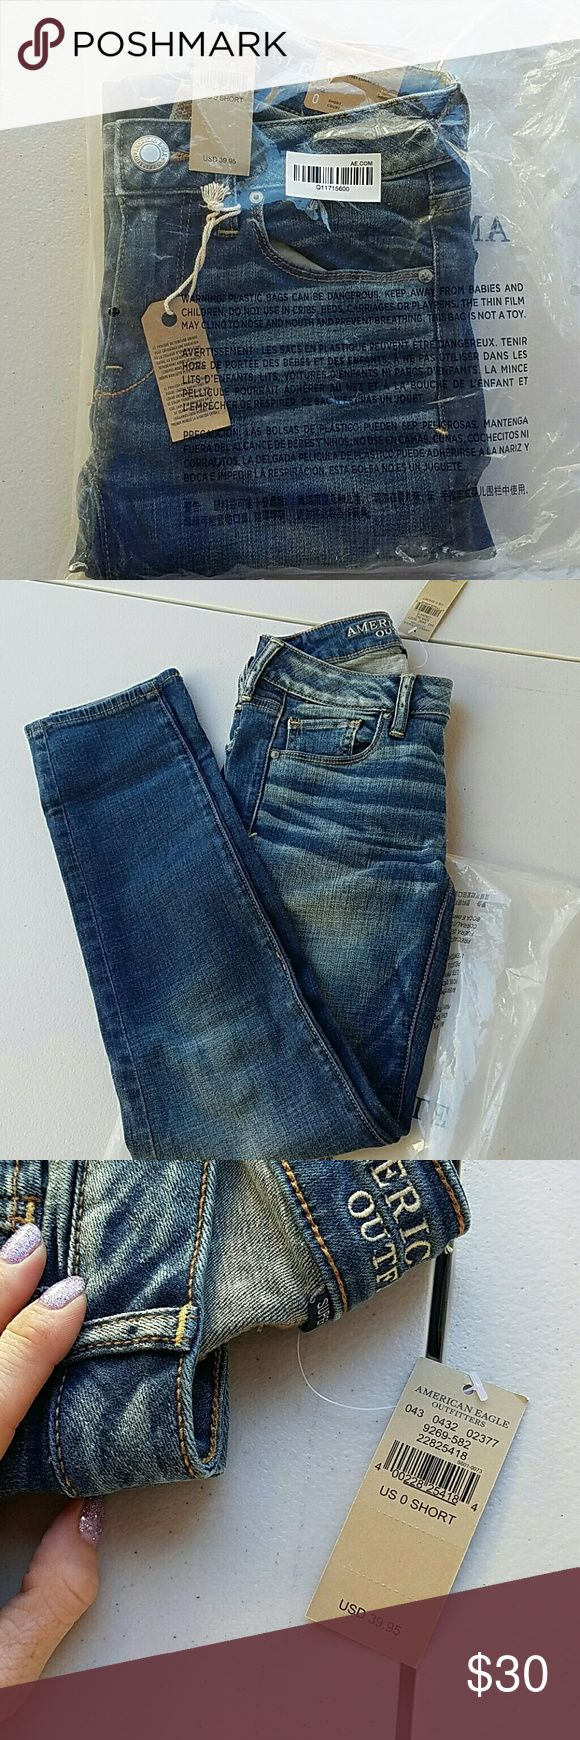 Brand new never worn American Eagle jeans Still in bag tag attached I ordered these online and never wore them. They're absolutely perfect just not what I thought I ordered. Size 0 short skinny jeans Great Wash it's called Paradise wave low-rise super stretch American Eagle Outfitters Jeans Skinny